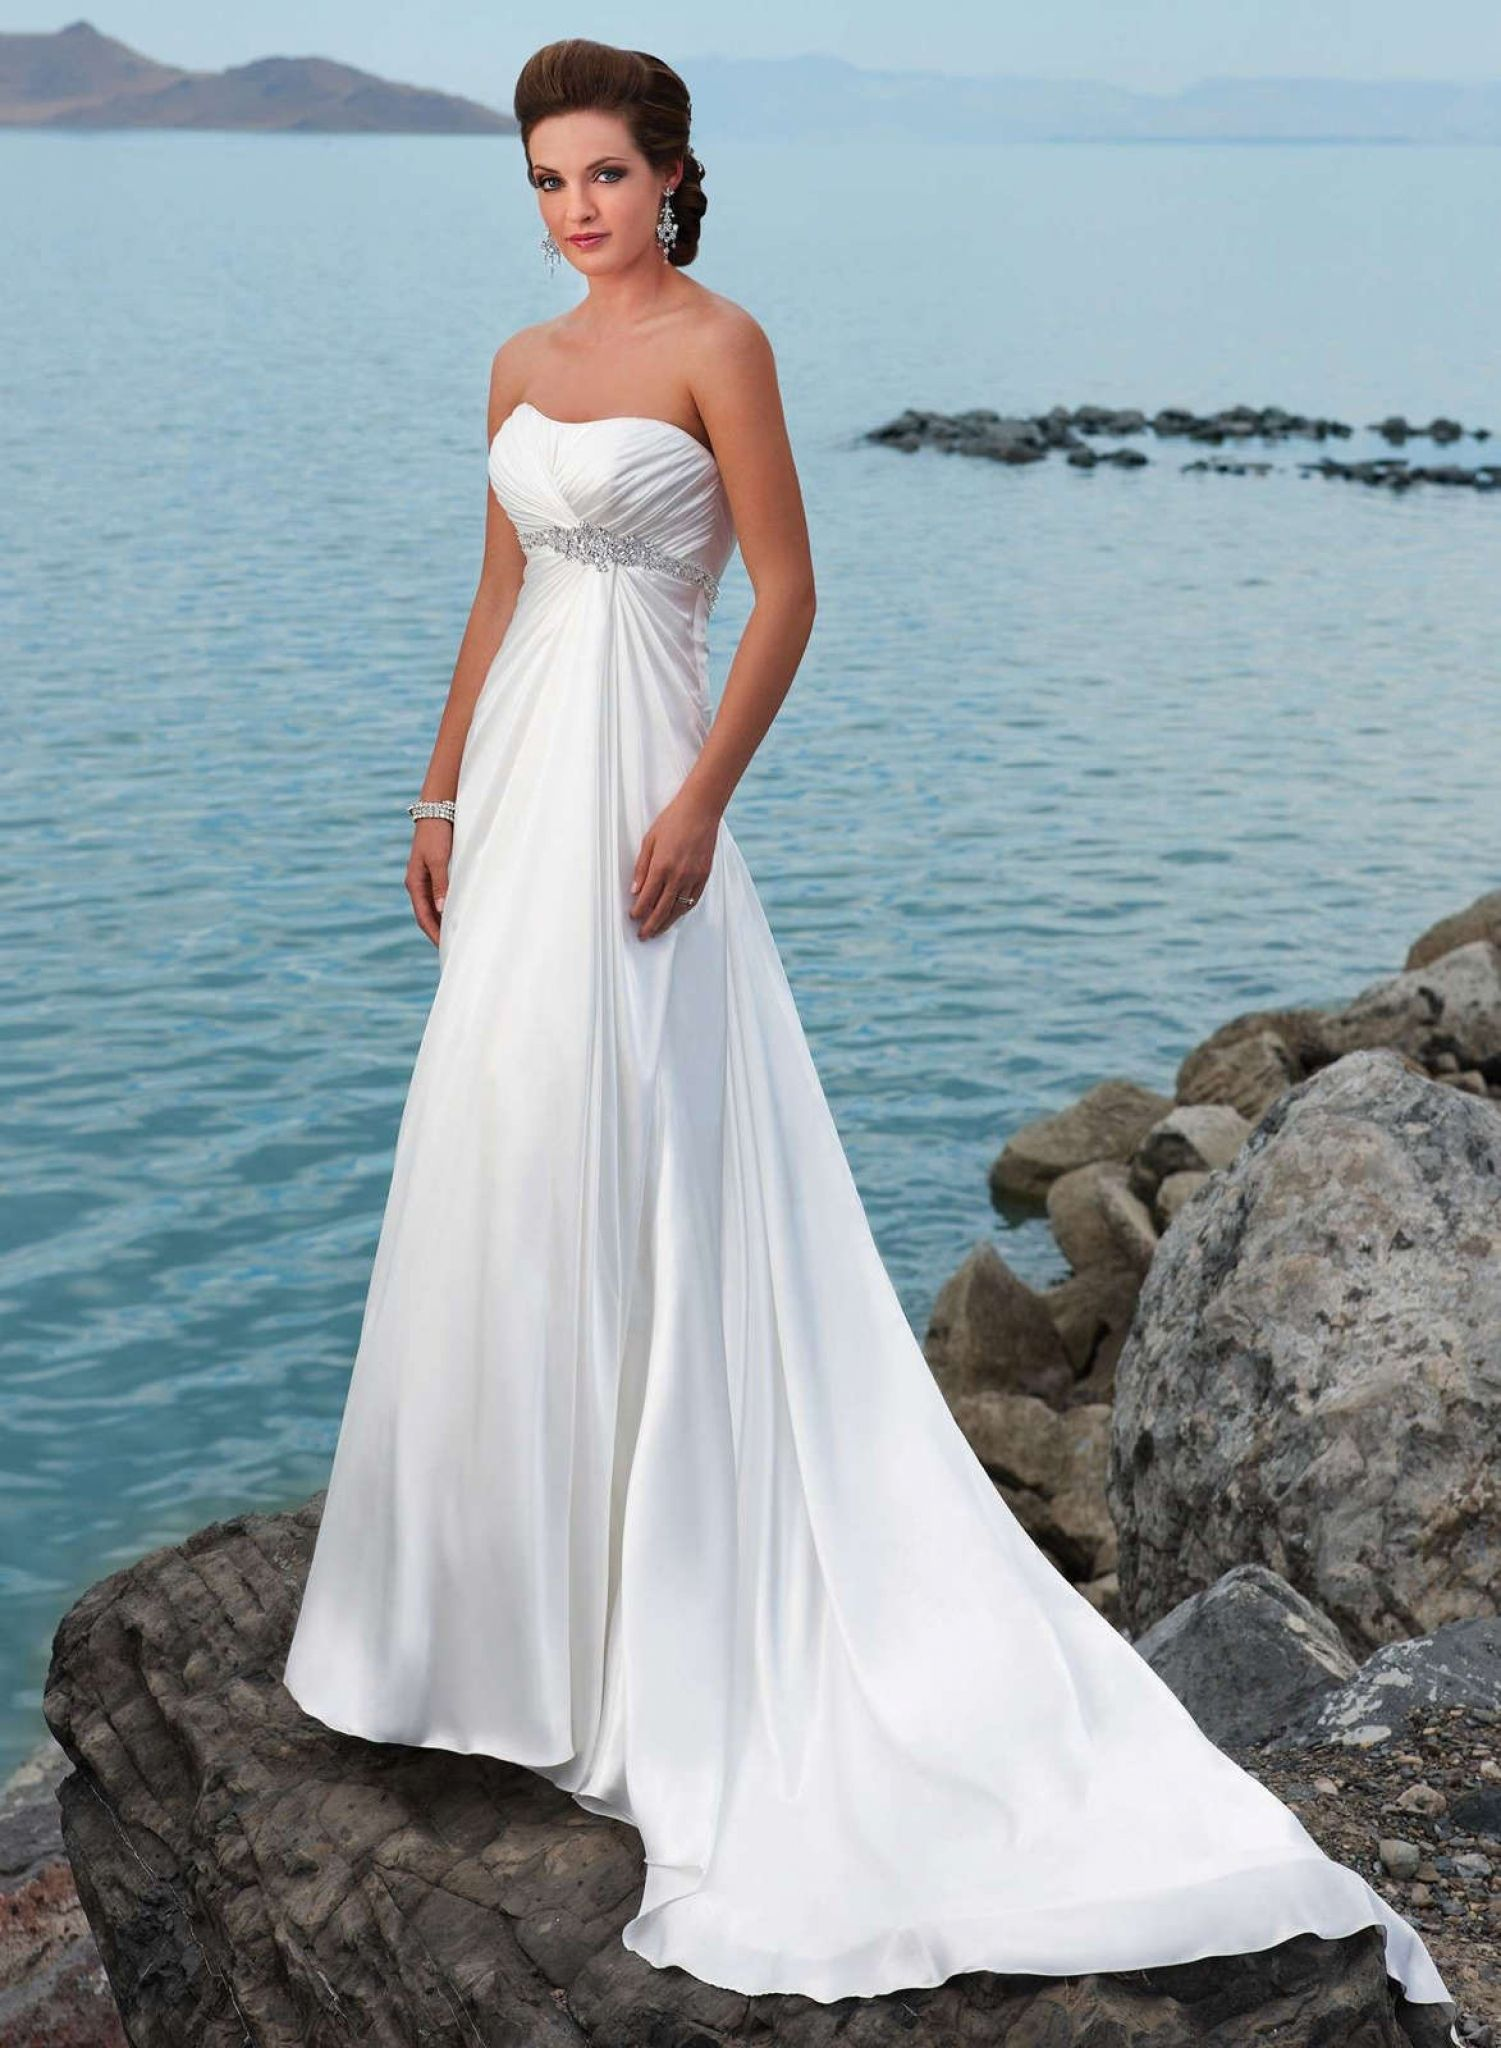 Fancy Inexpensive Bridal Gown Designers Vignette - All Wedding ...